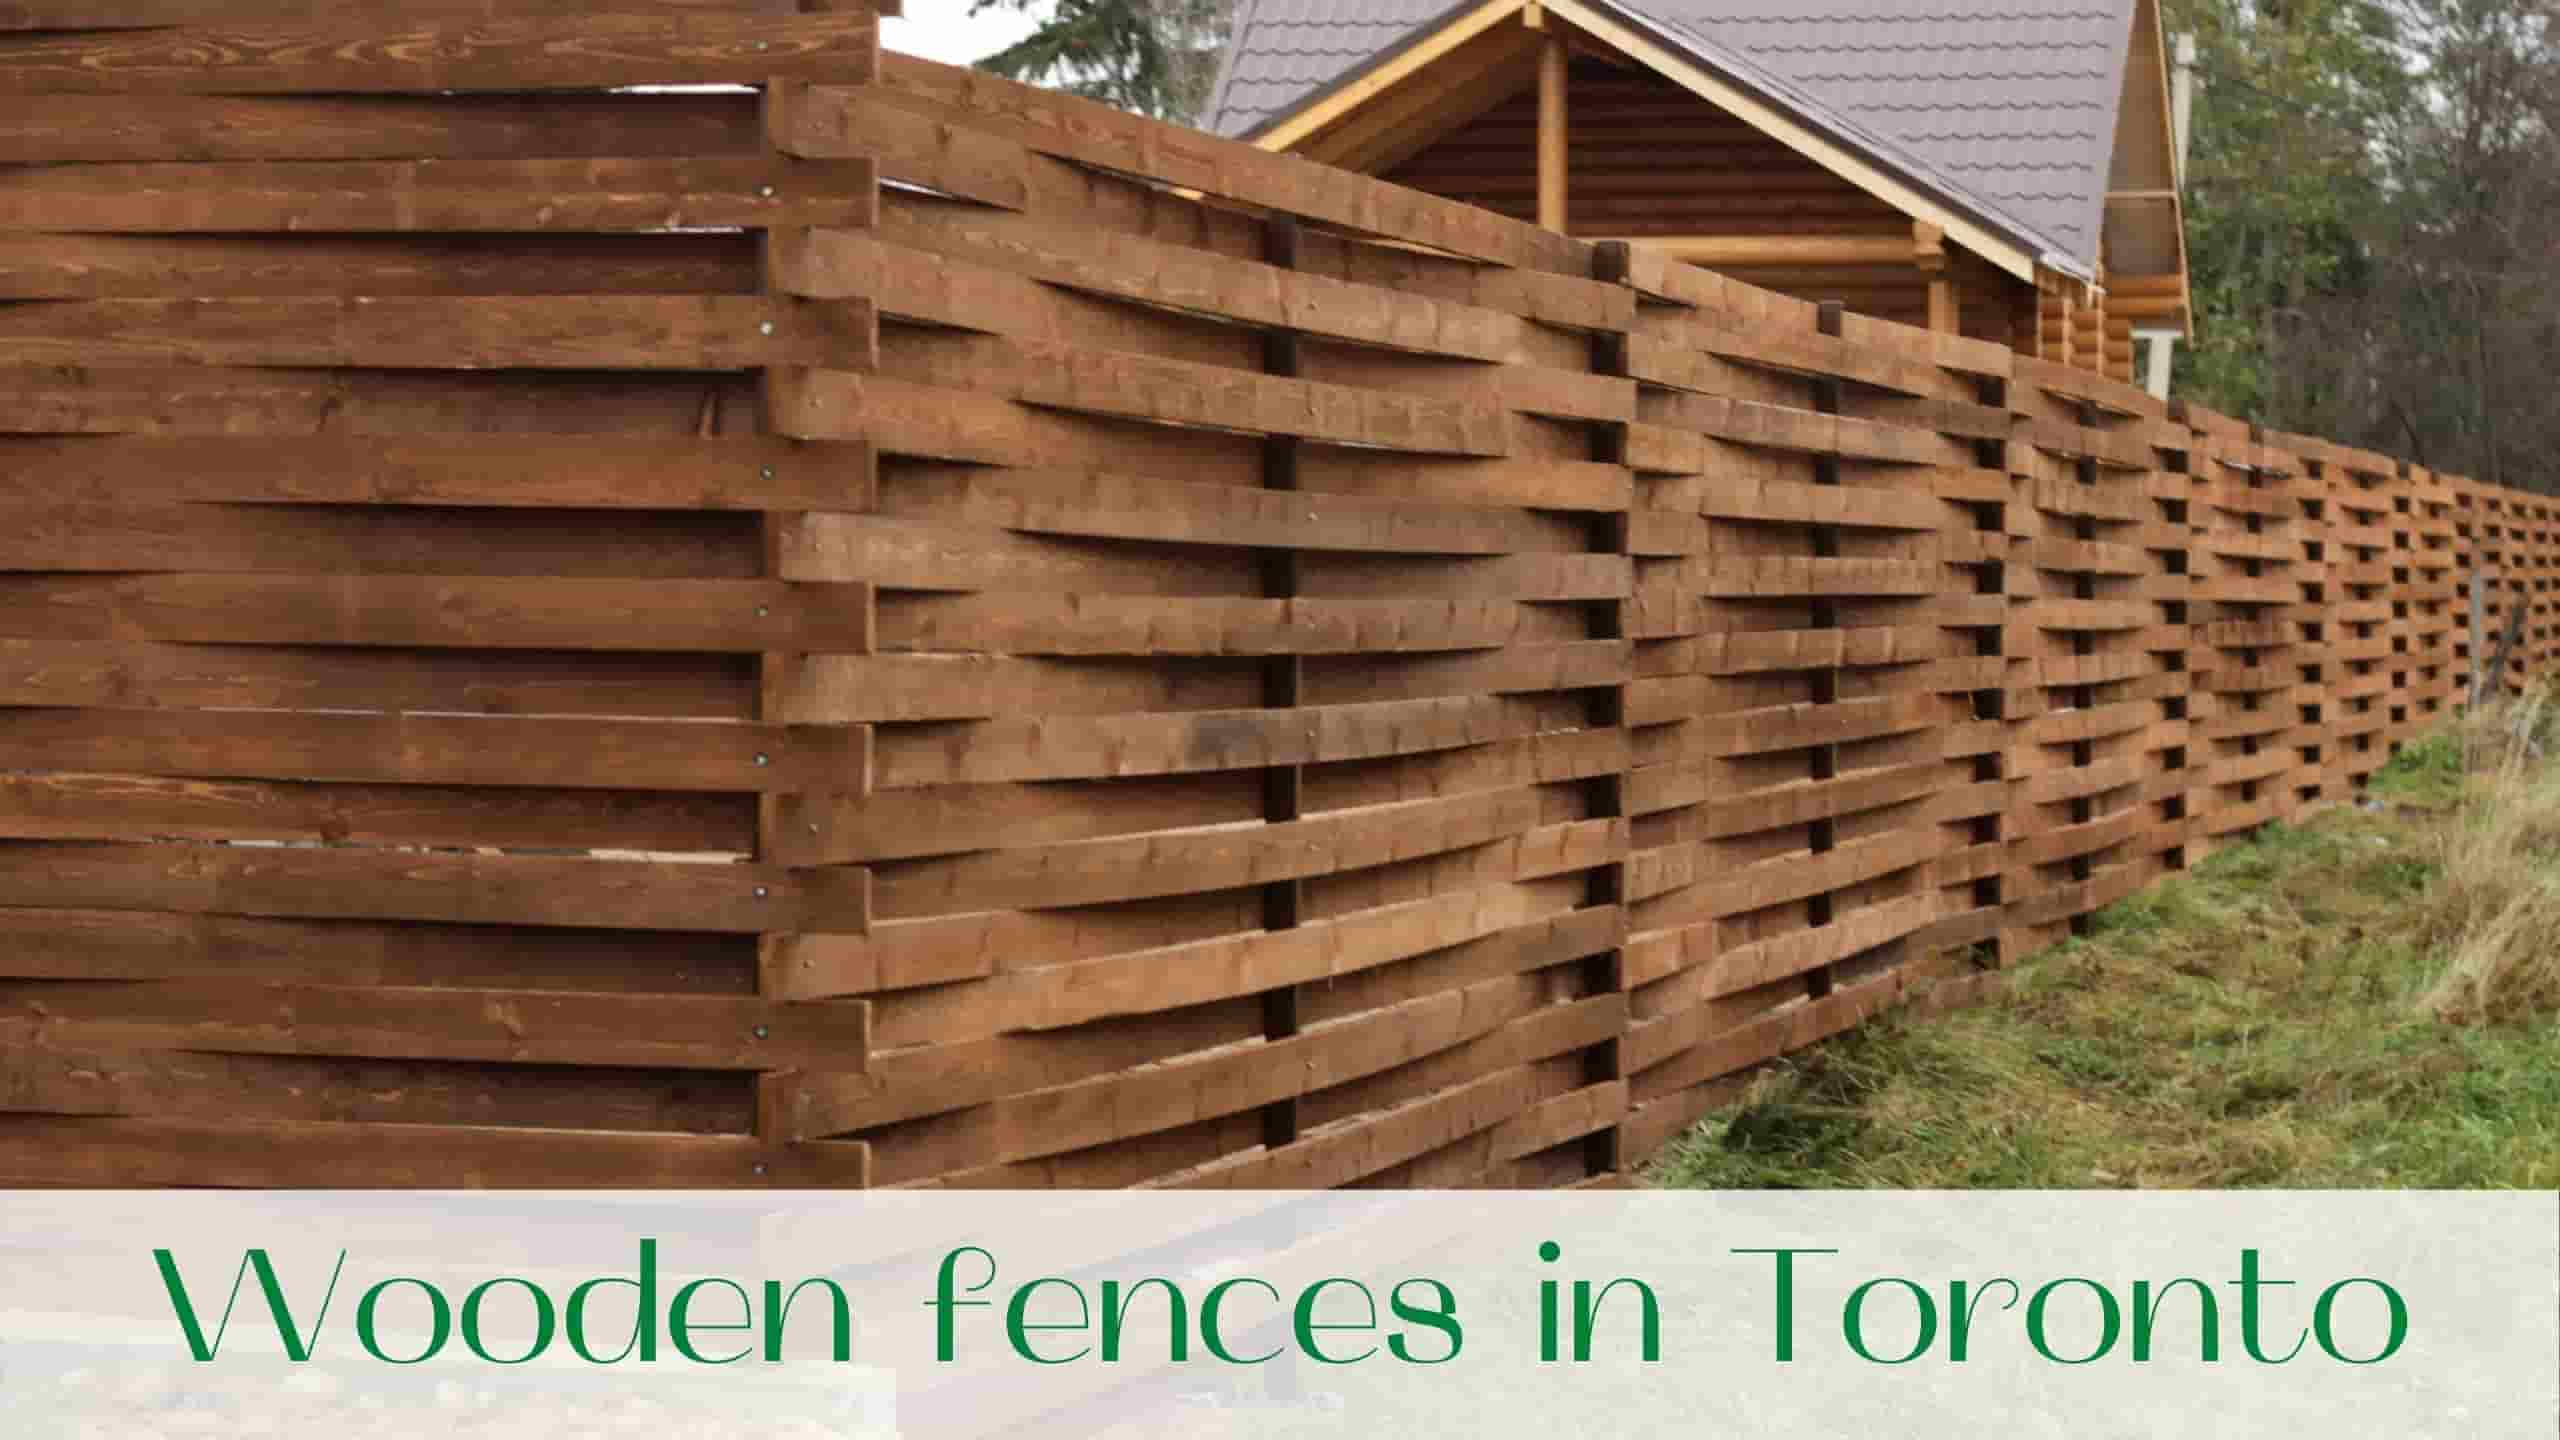 Wooden fences in Toronto